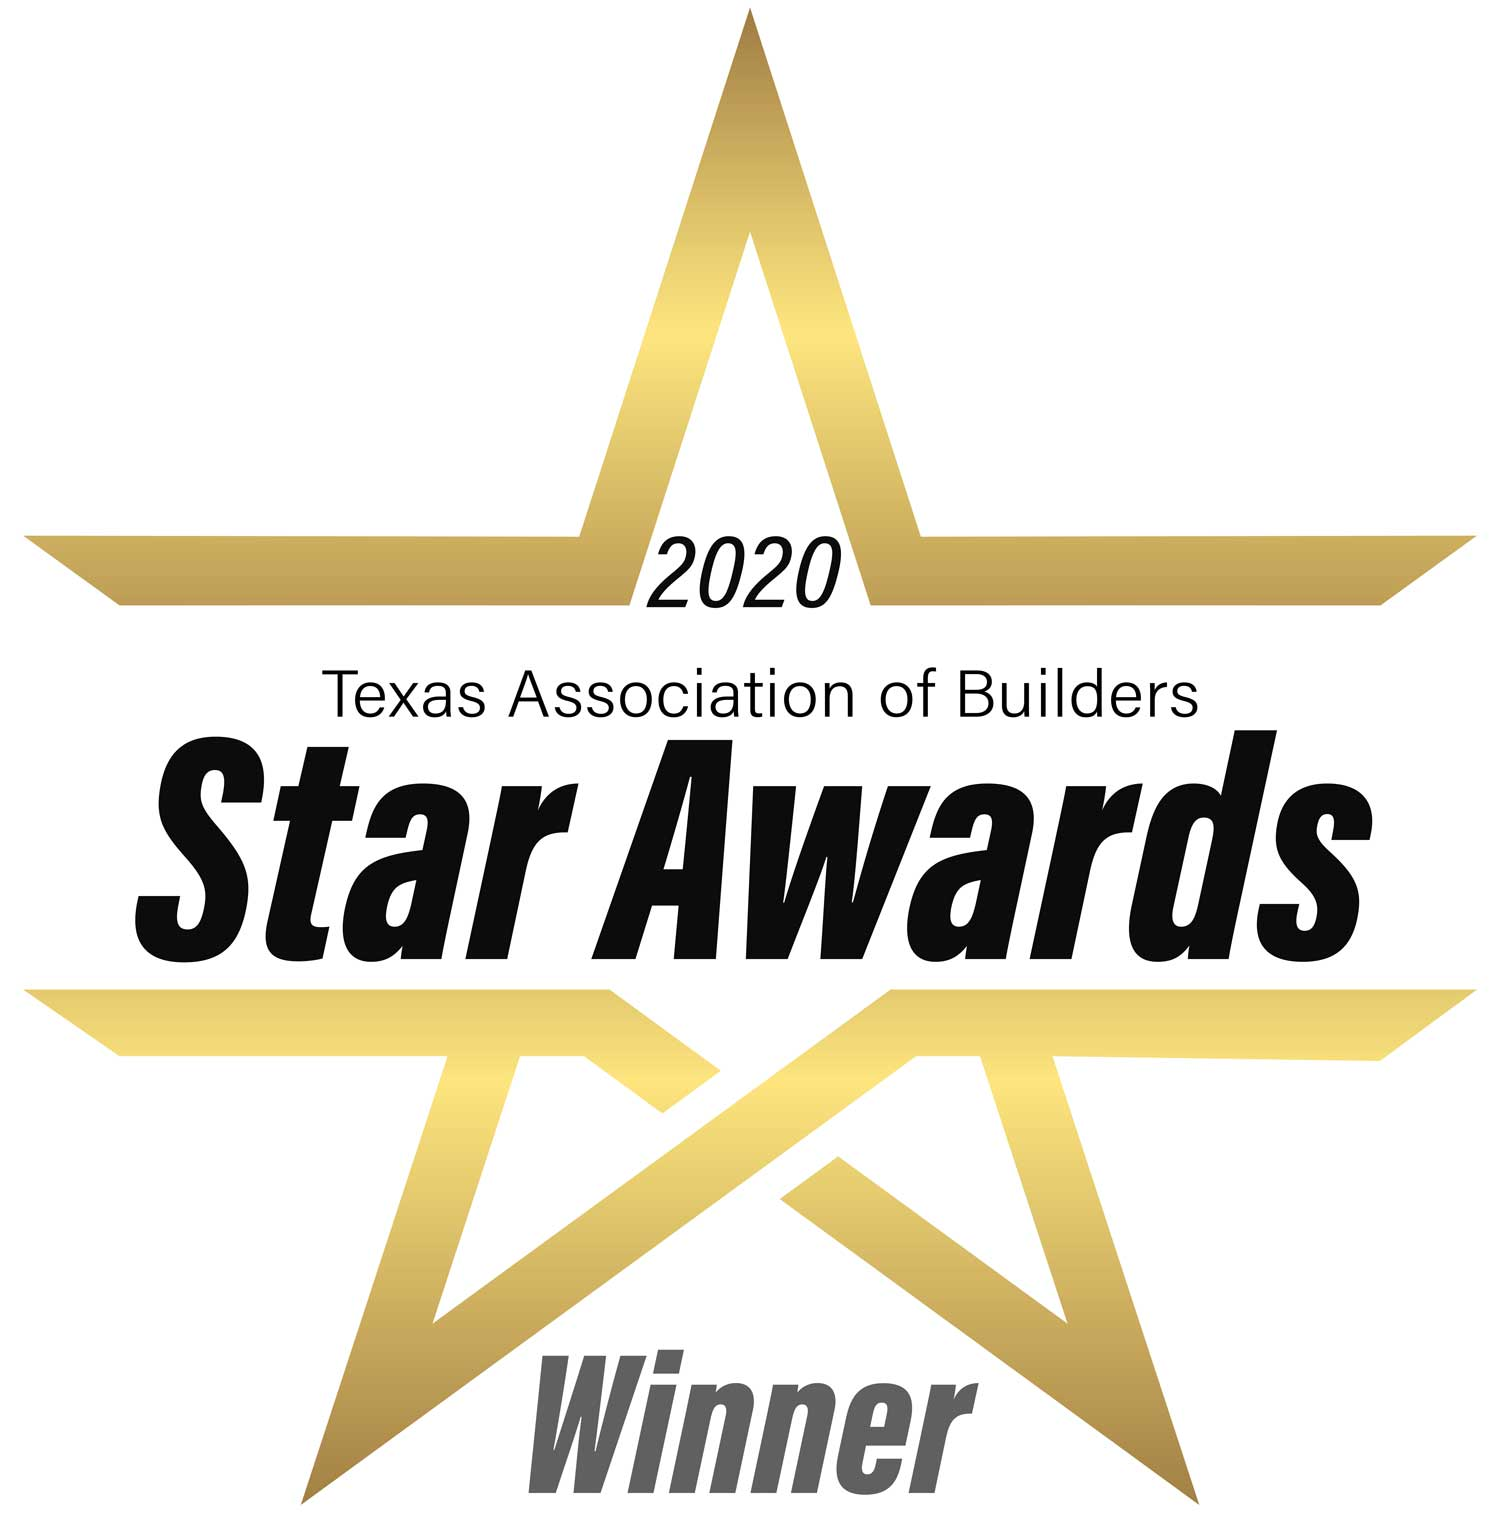 Texas Builders Association Star Awards 2020 Winner Logo